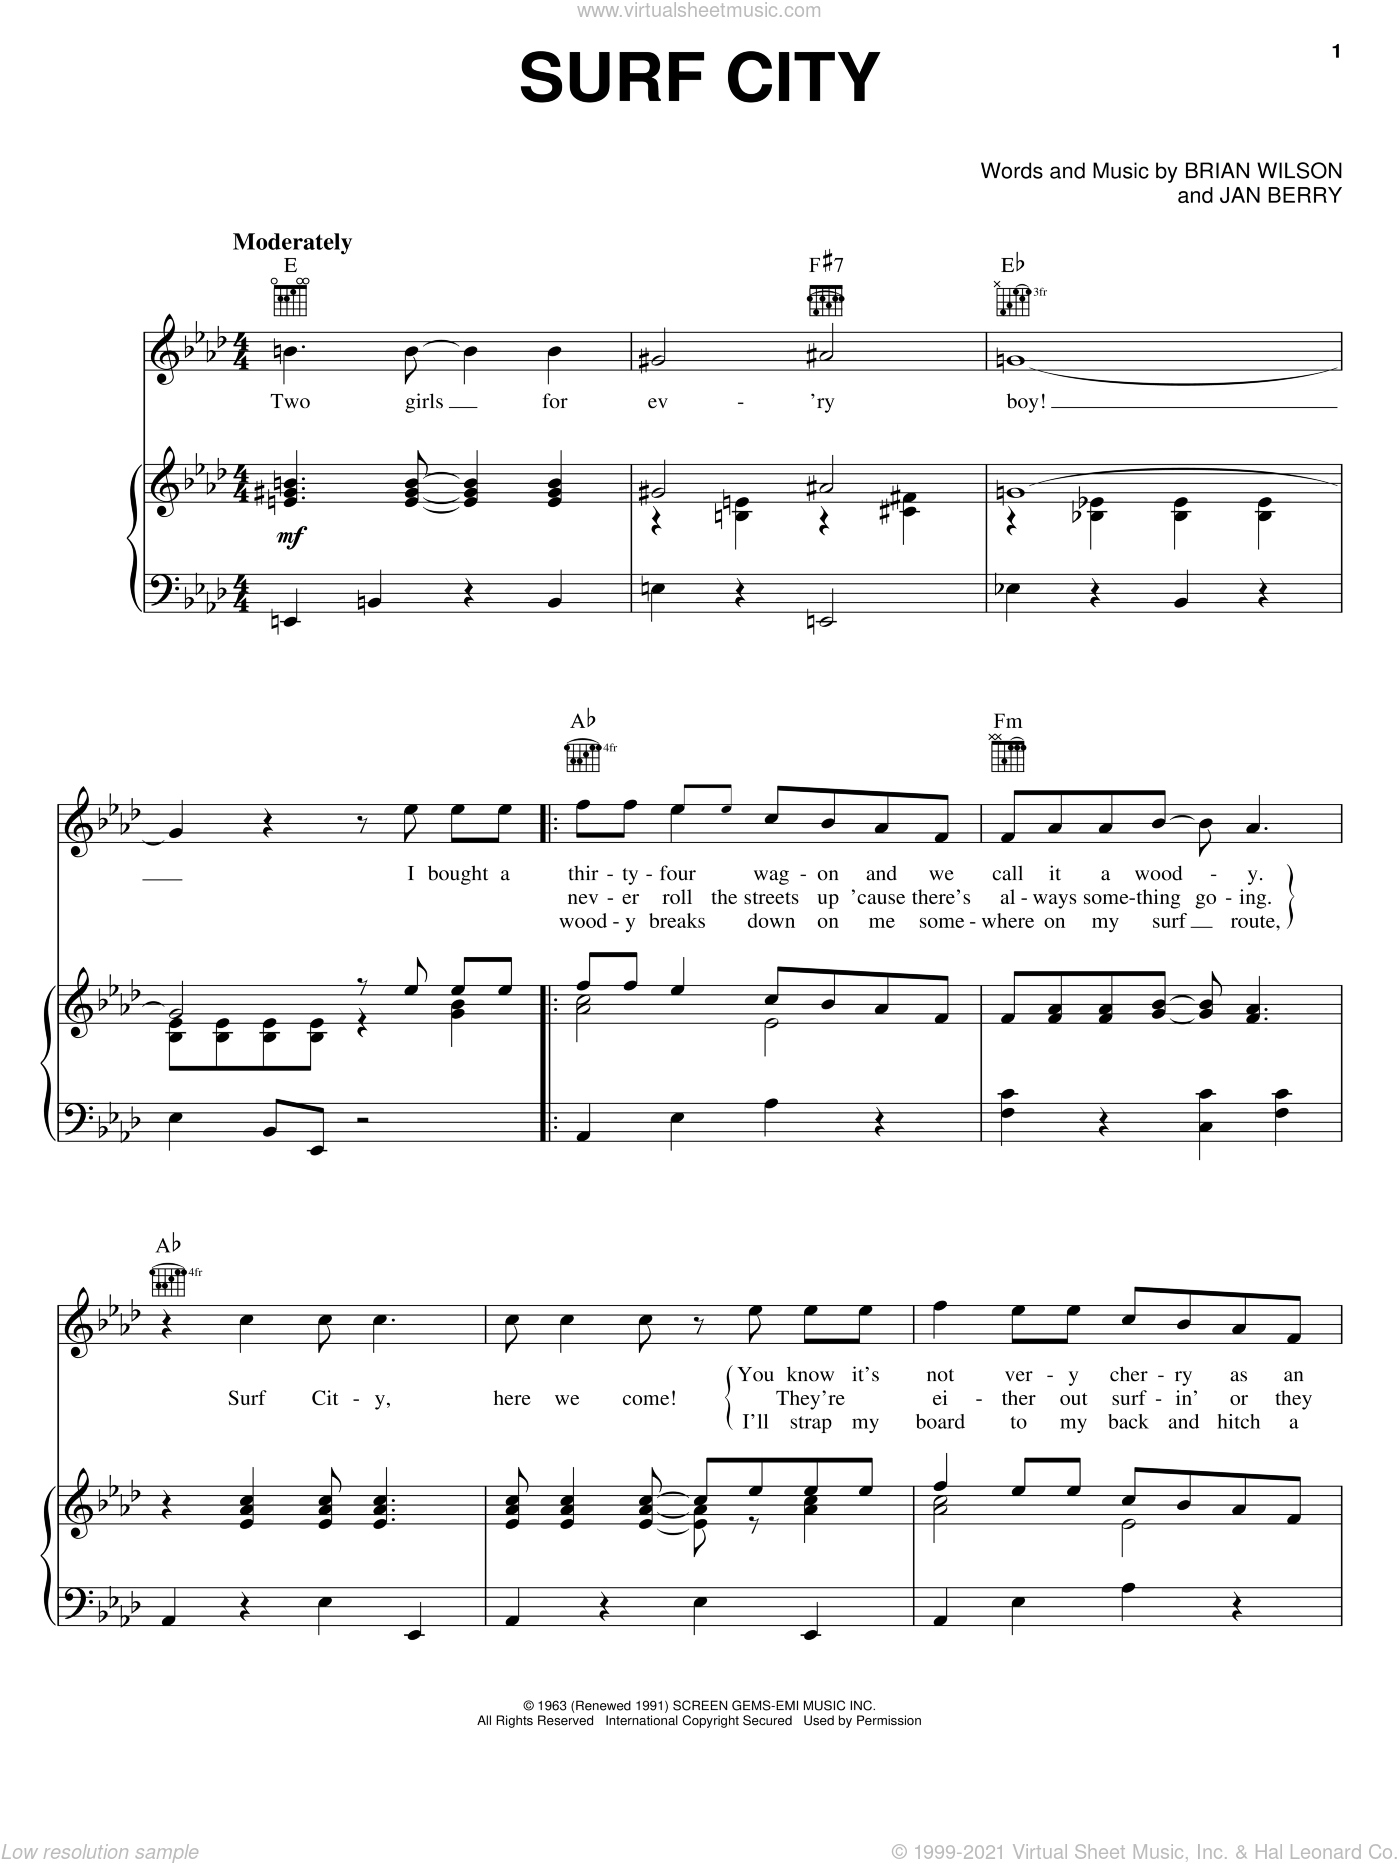 Surf City sheet music for voice, piano or guitar by Jan Berry, Jan & Dean and Brian Wilson. Score Image Preview.